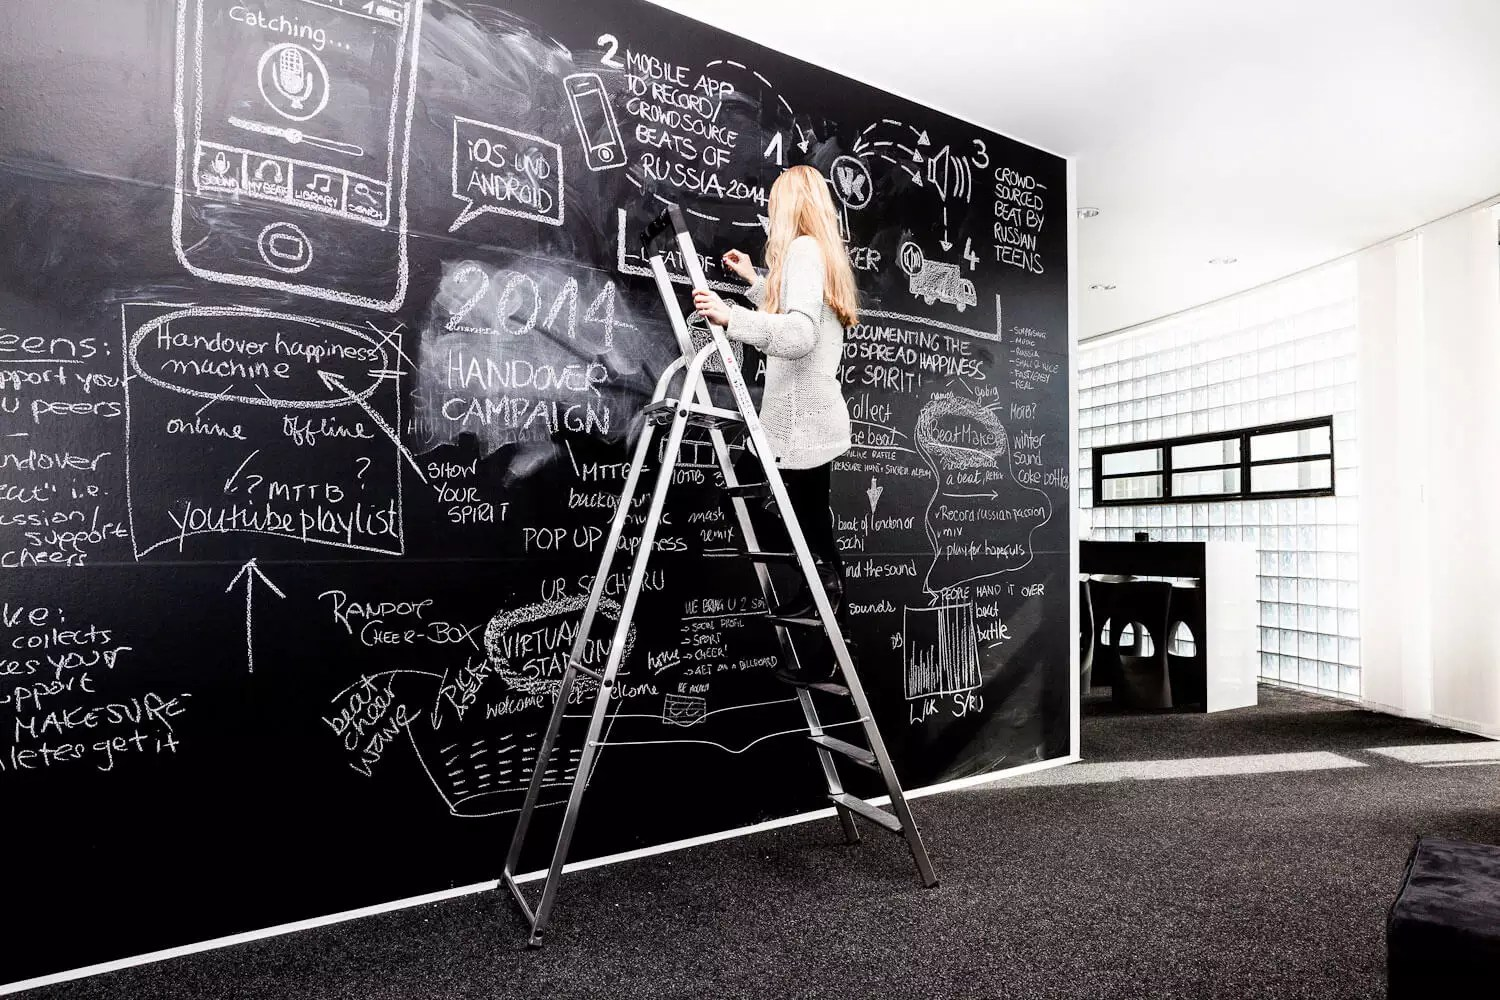 advertising agency creative board chalk board brainstorm